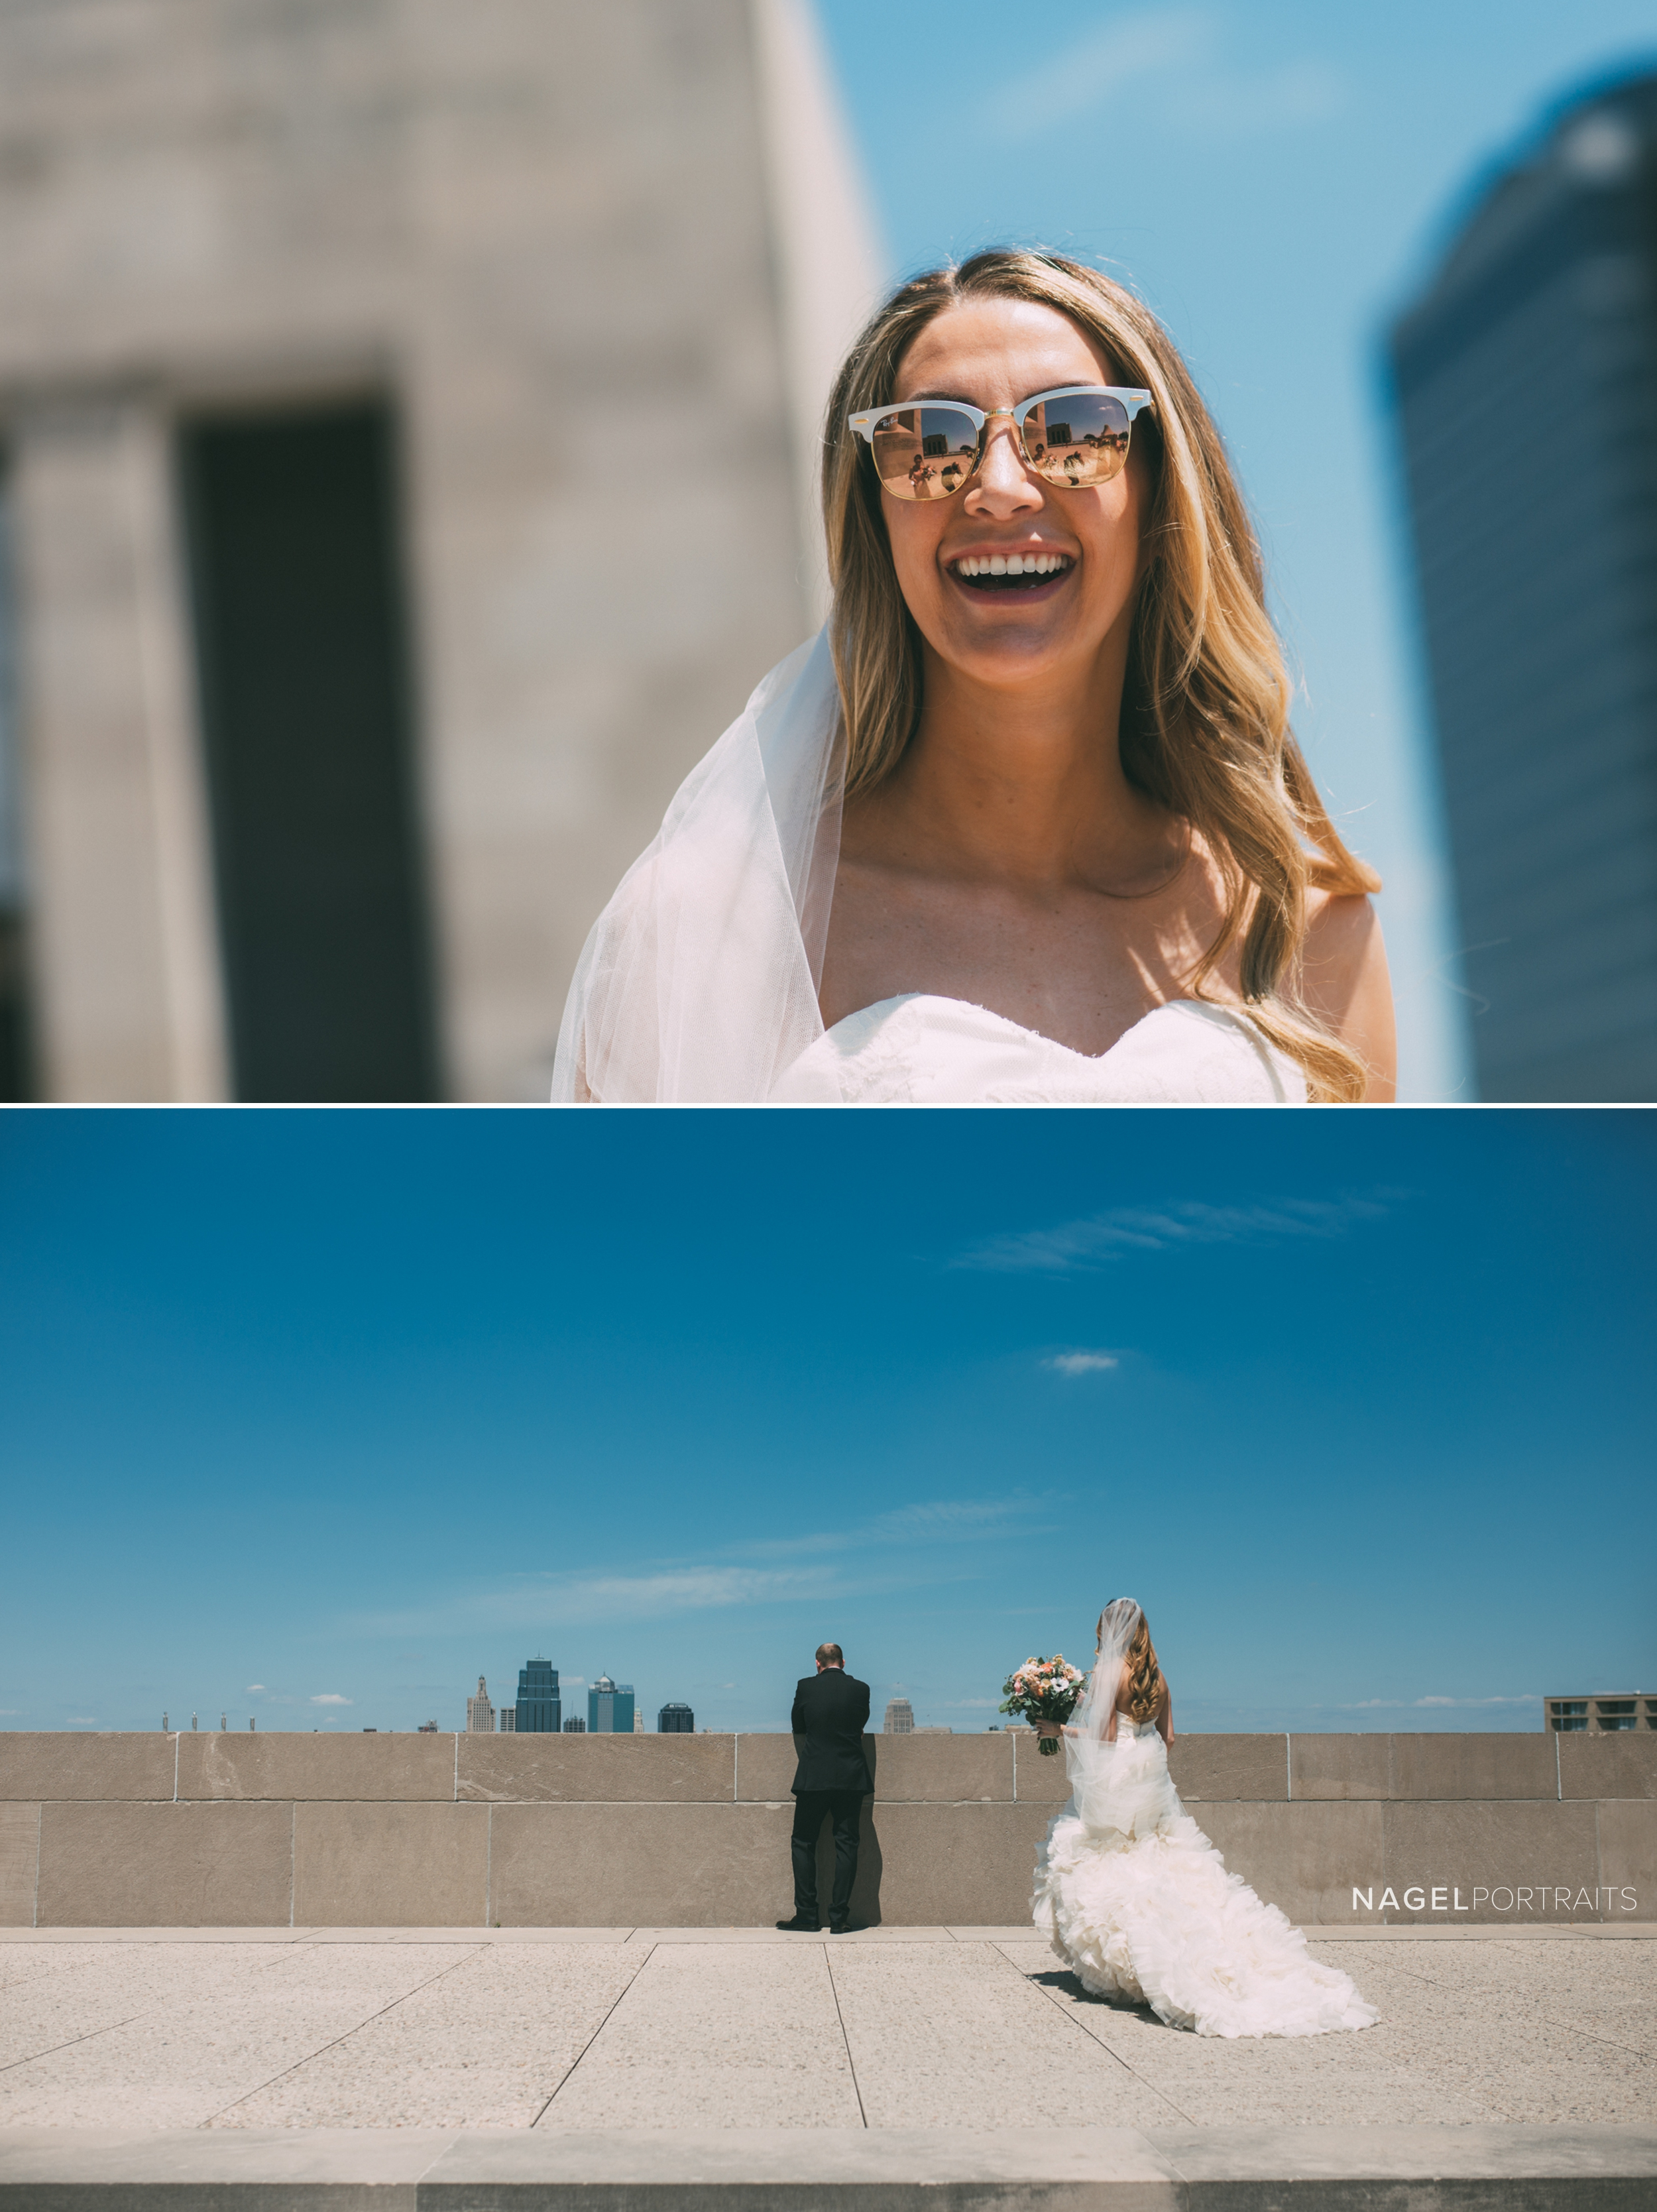 bride and groom first look at Liberty Memorial in Kansas City on wedding day